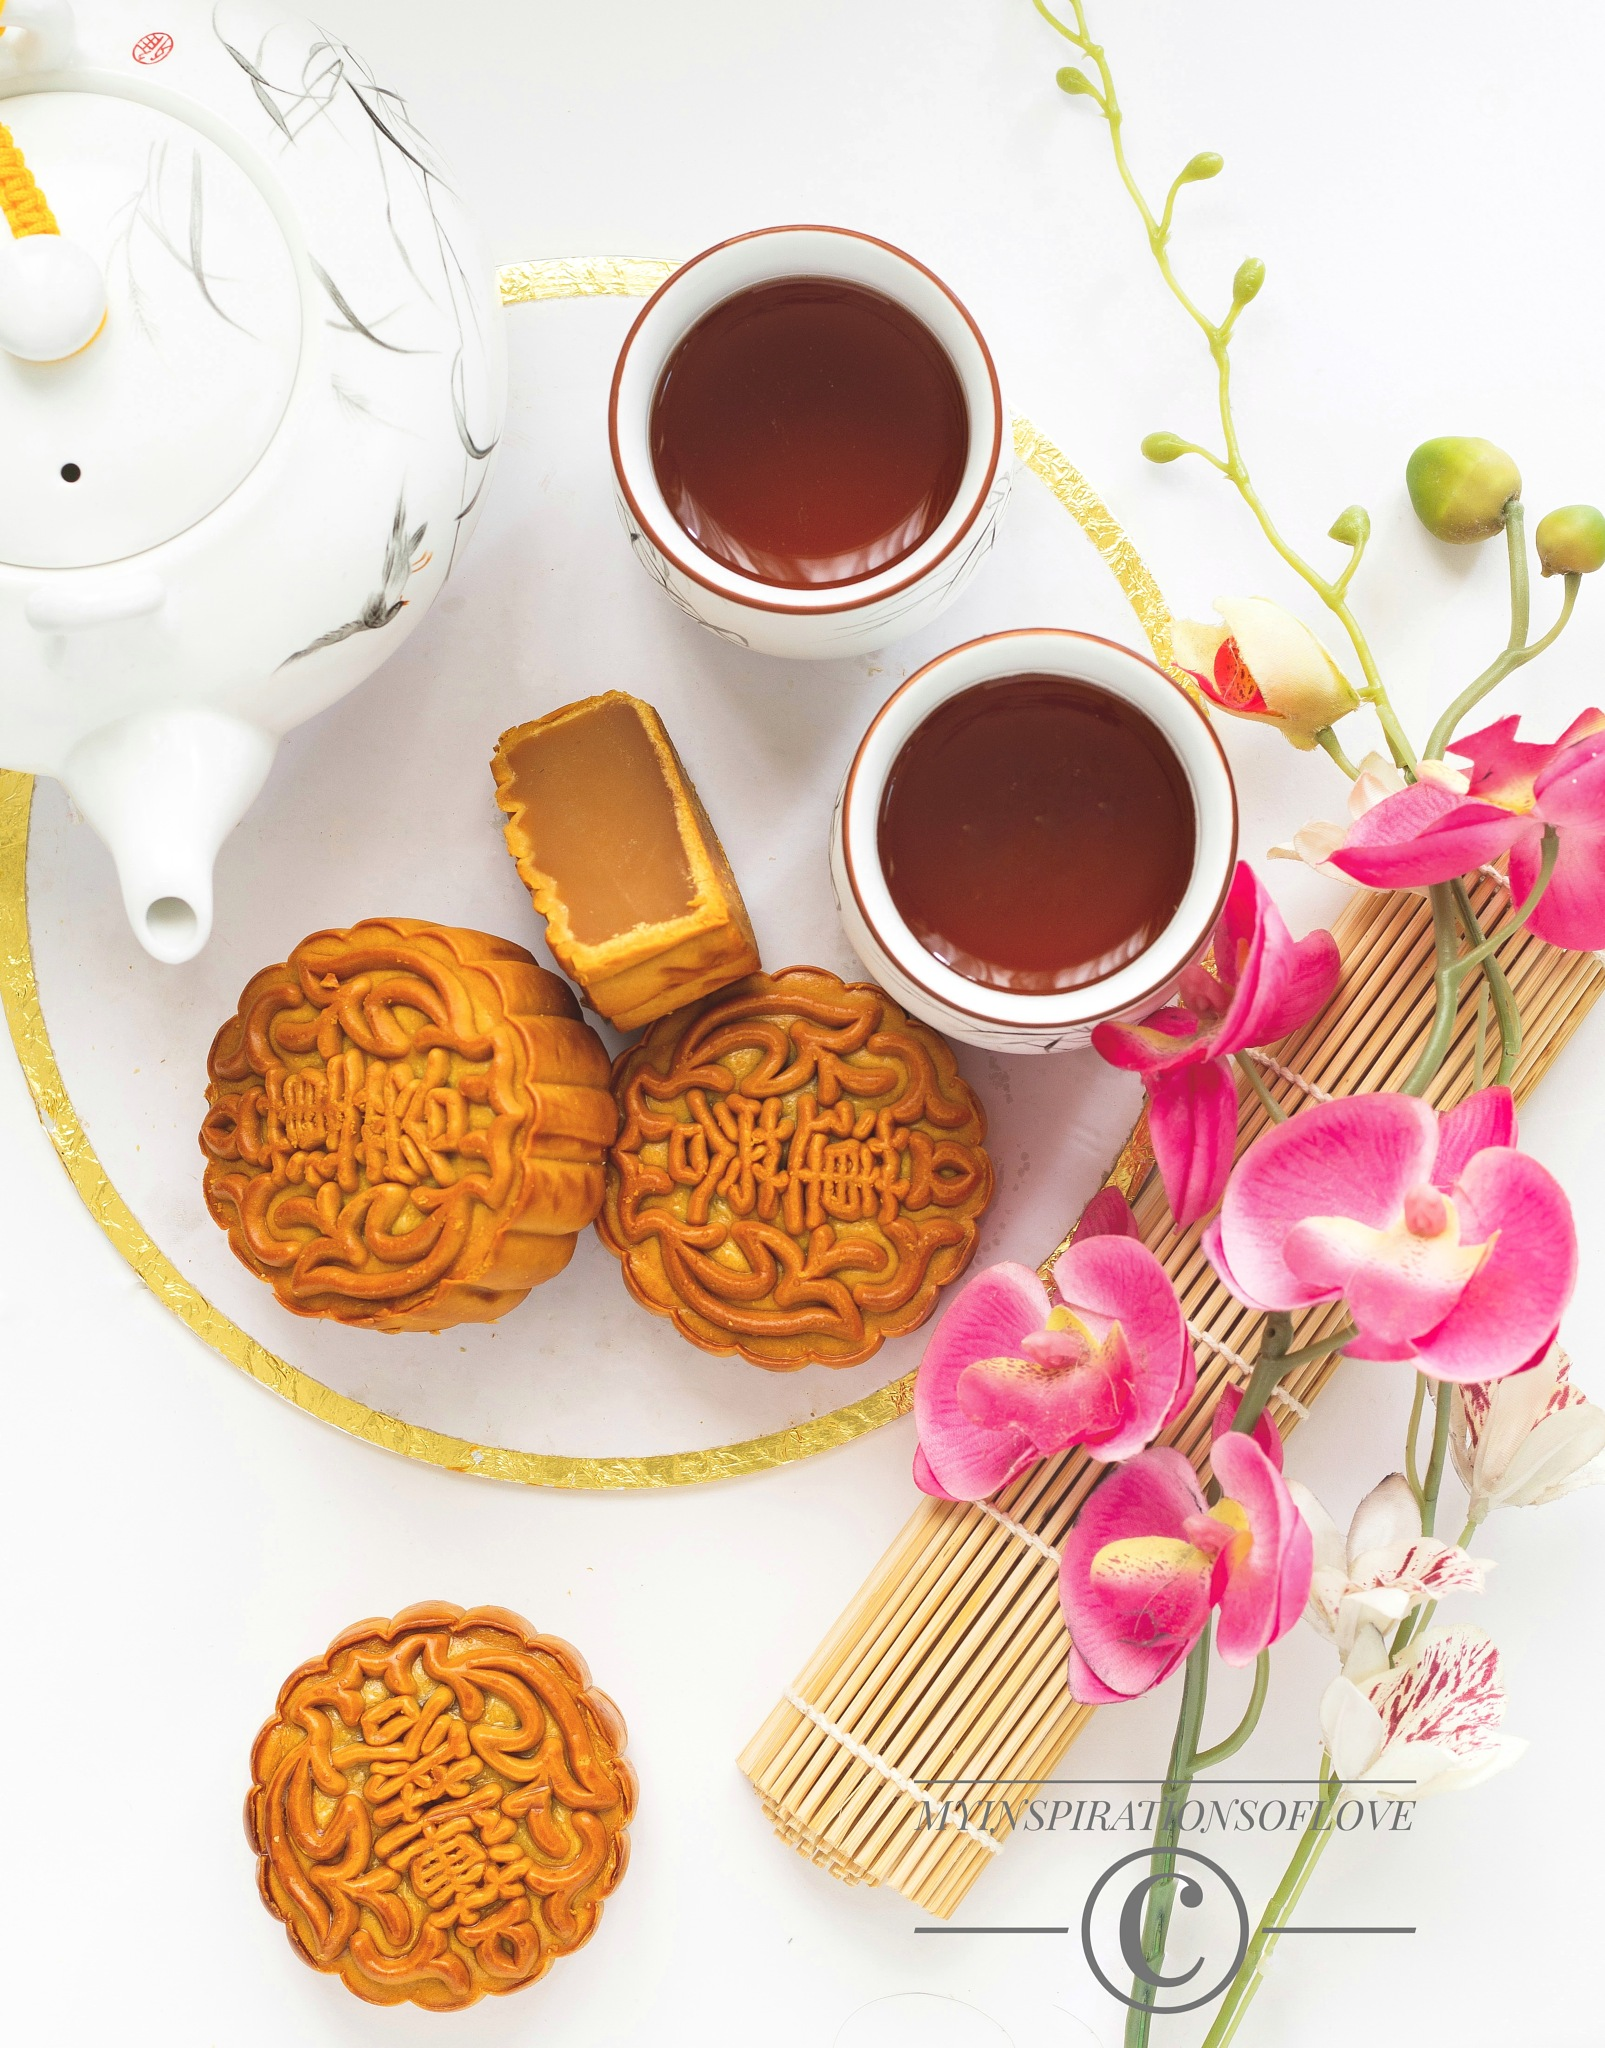 mid autumn festival is round the corner and it's mooncake time  by Anu Girish